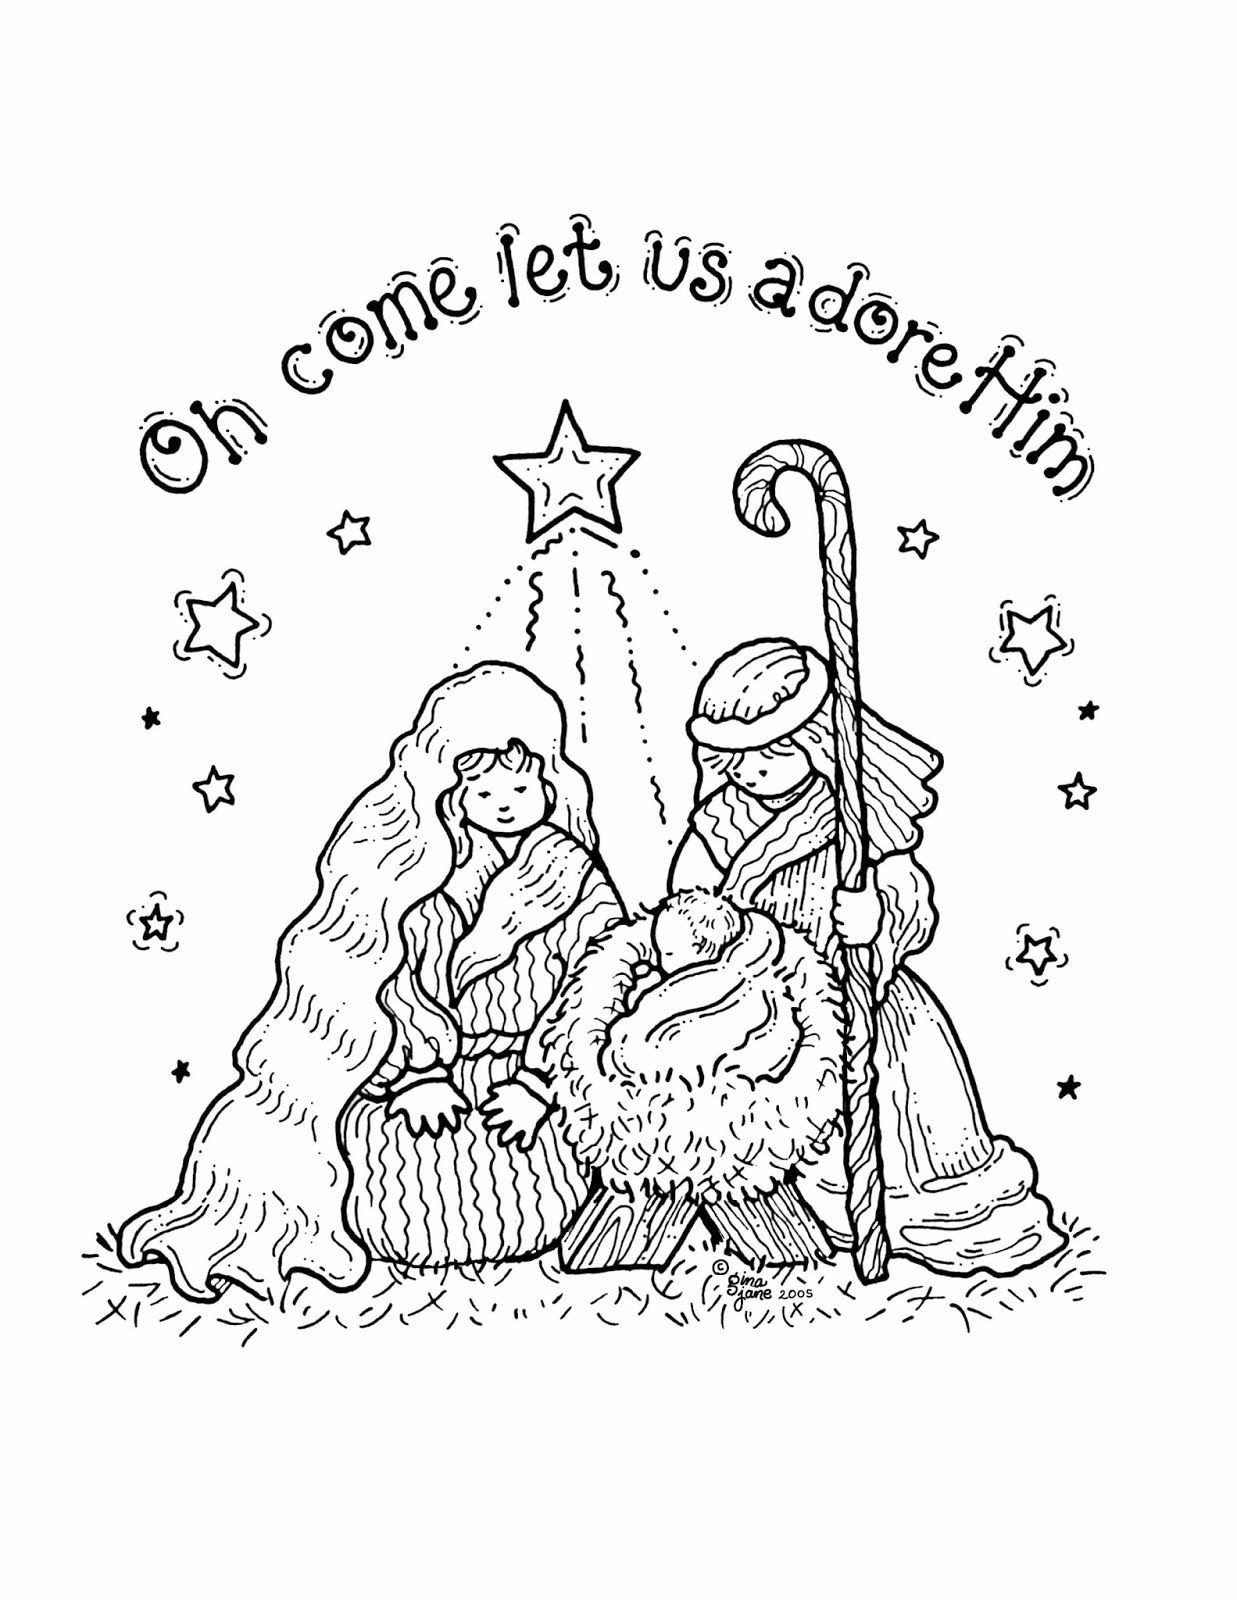 Free Printable Nativity Coloring Pages For Kids   Projects To Try - Free Printable Christmas Baby Jesus Coloring Pages